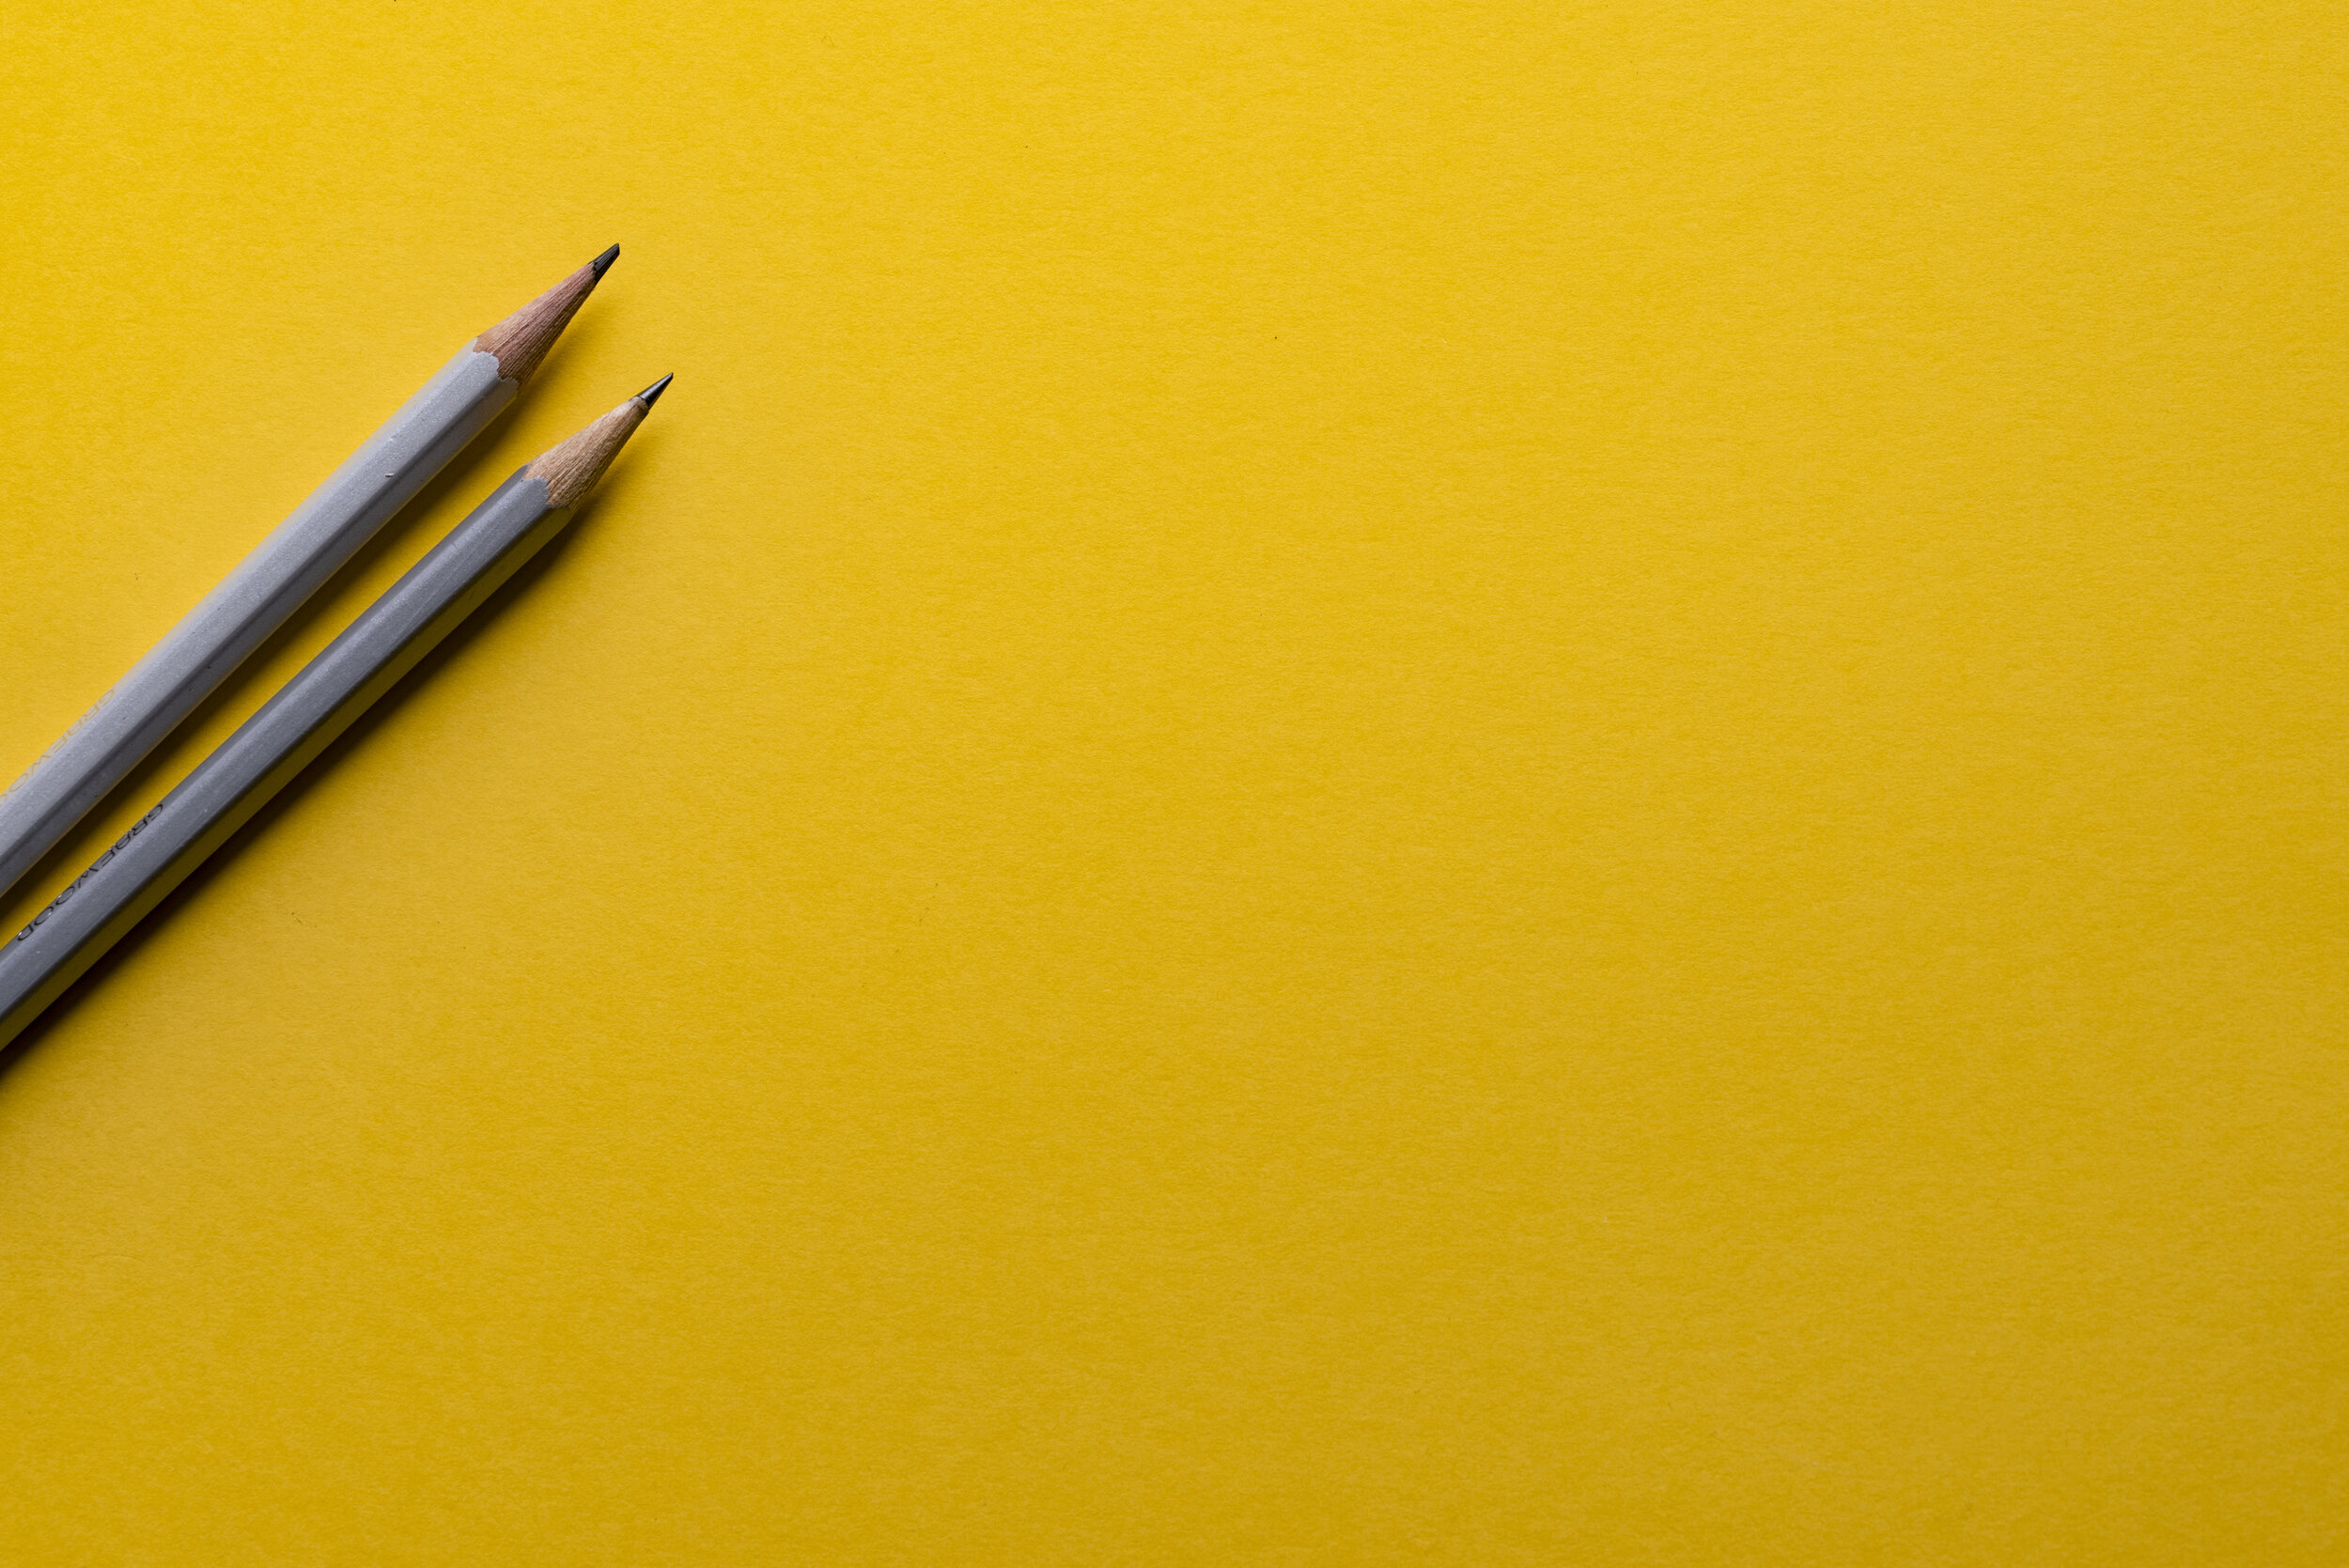 Two gray pencils lie side-by-side  on the far most side of yellow table top